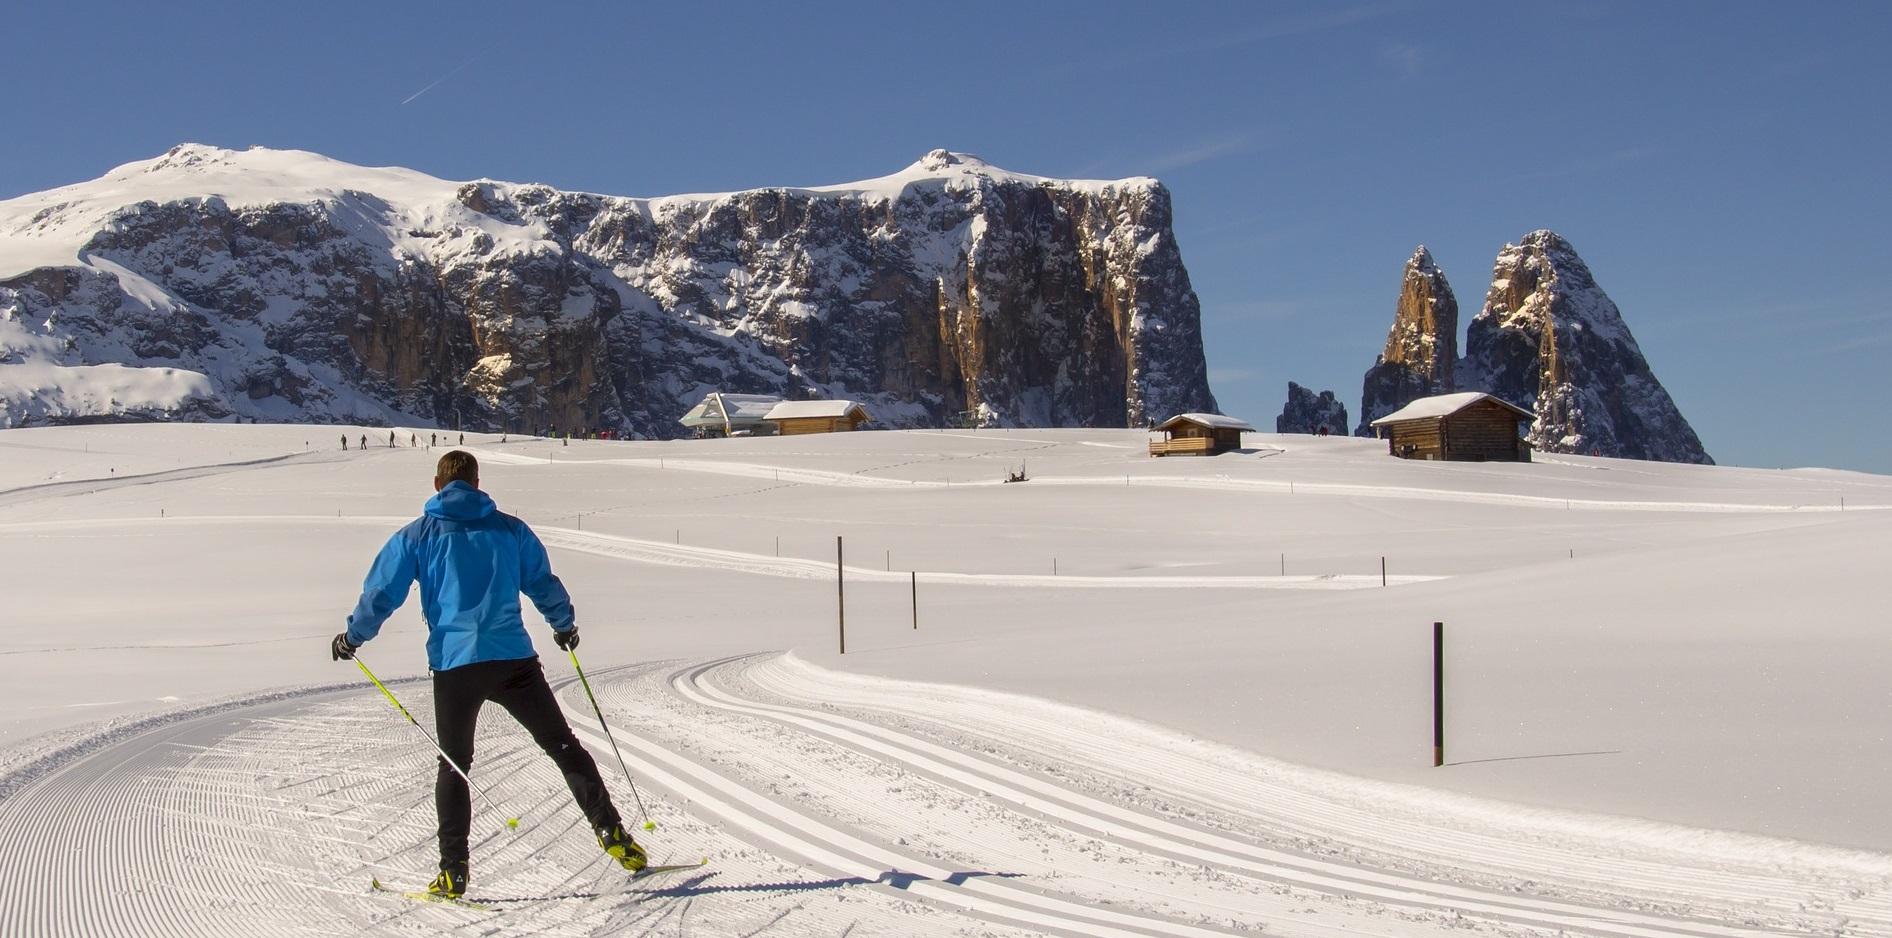 xc-skiing endurance training